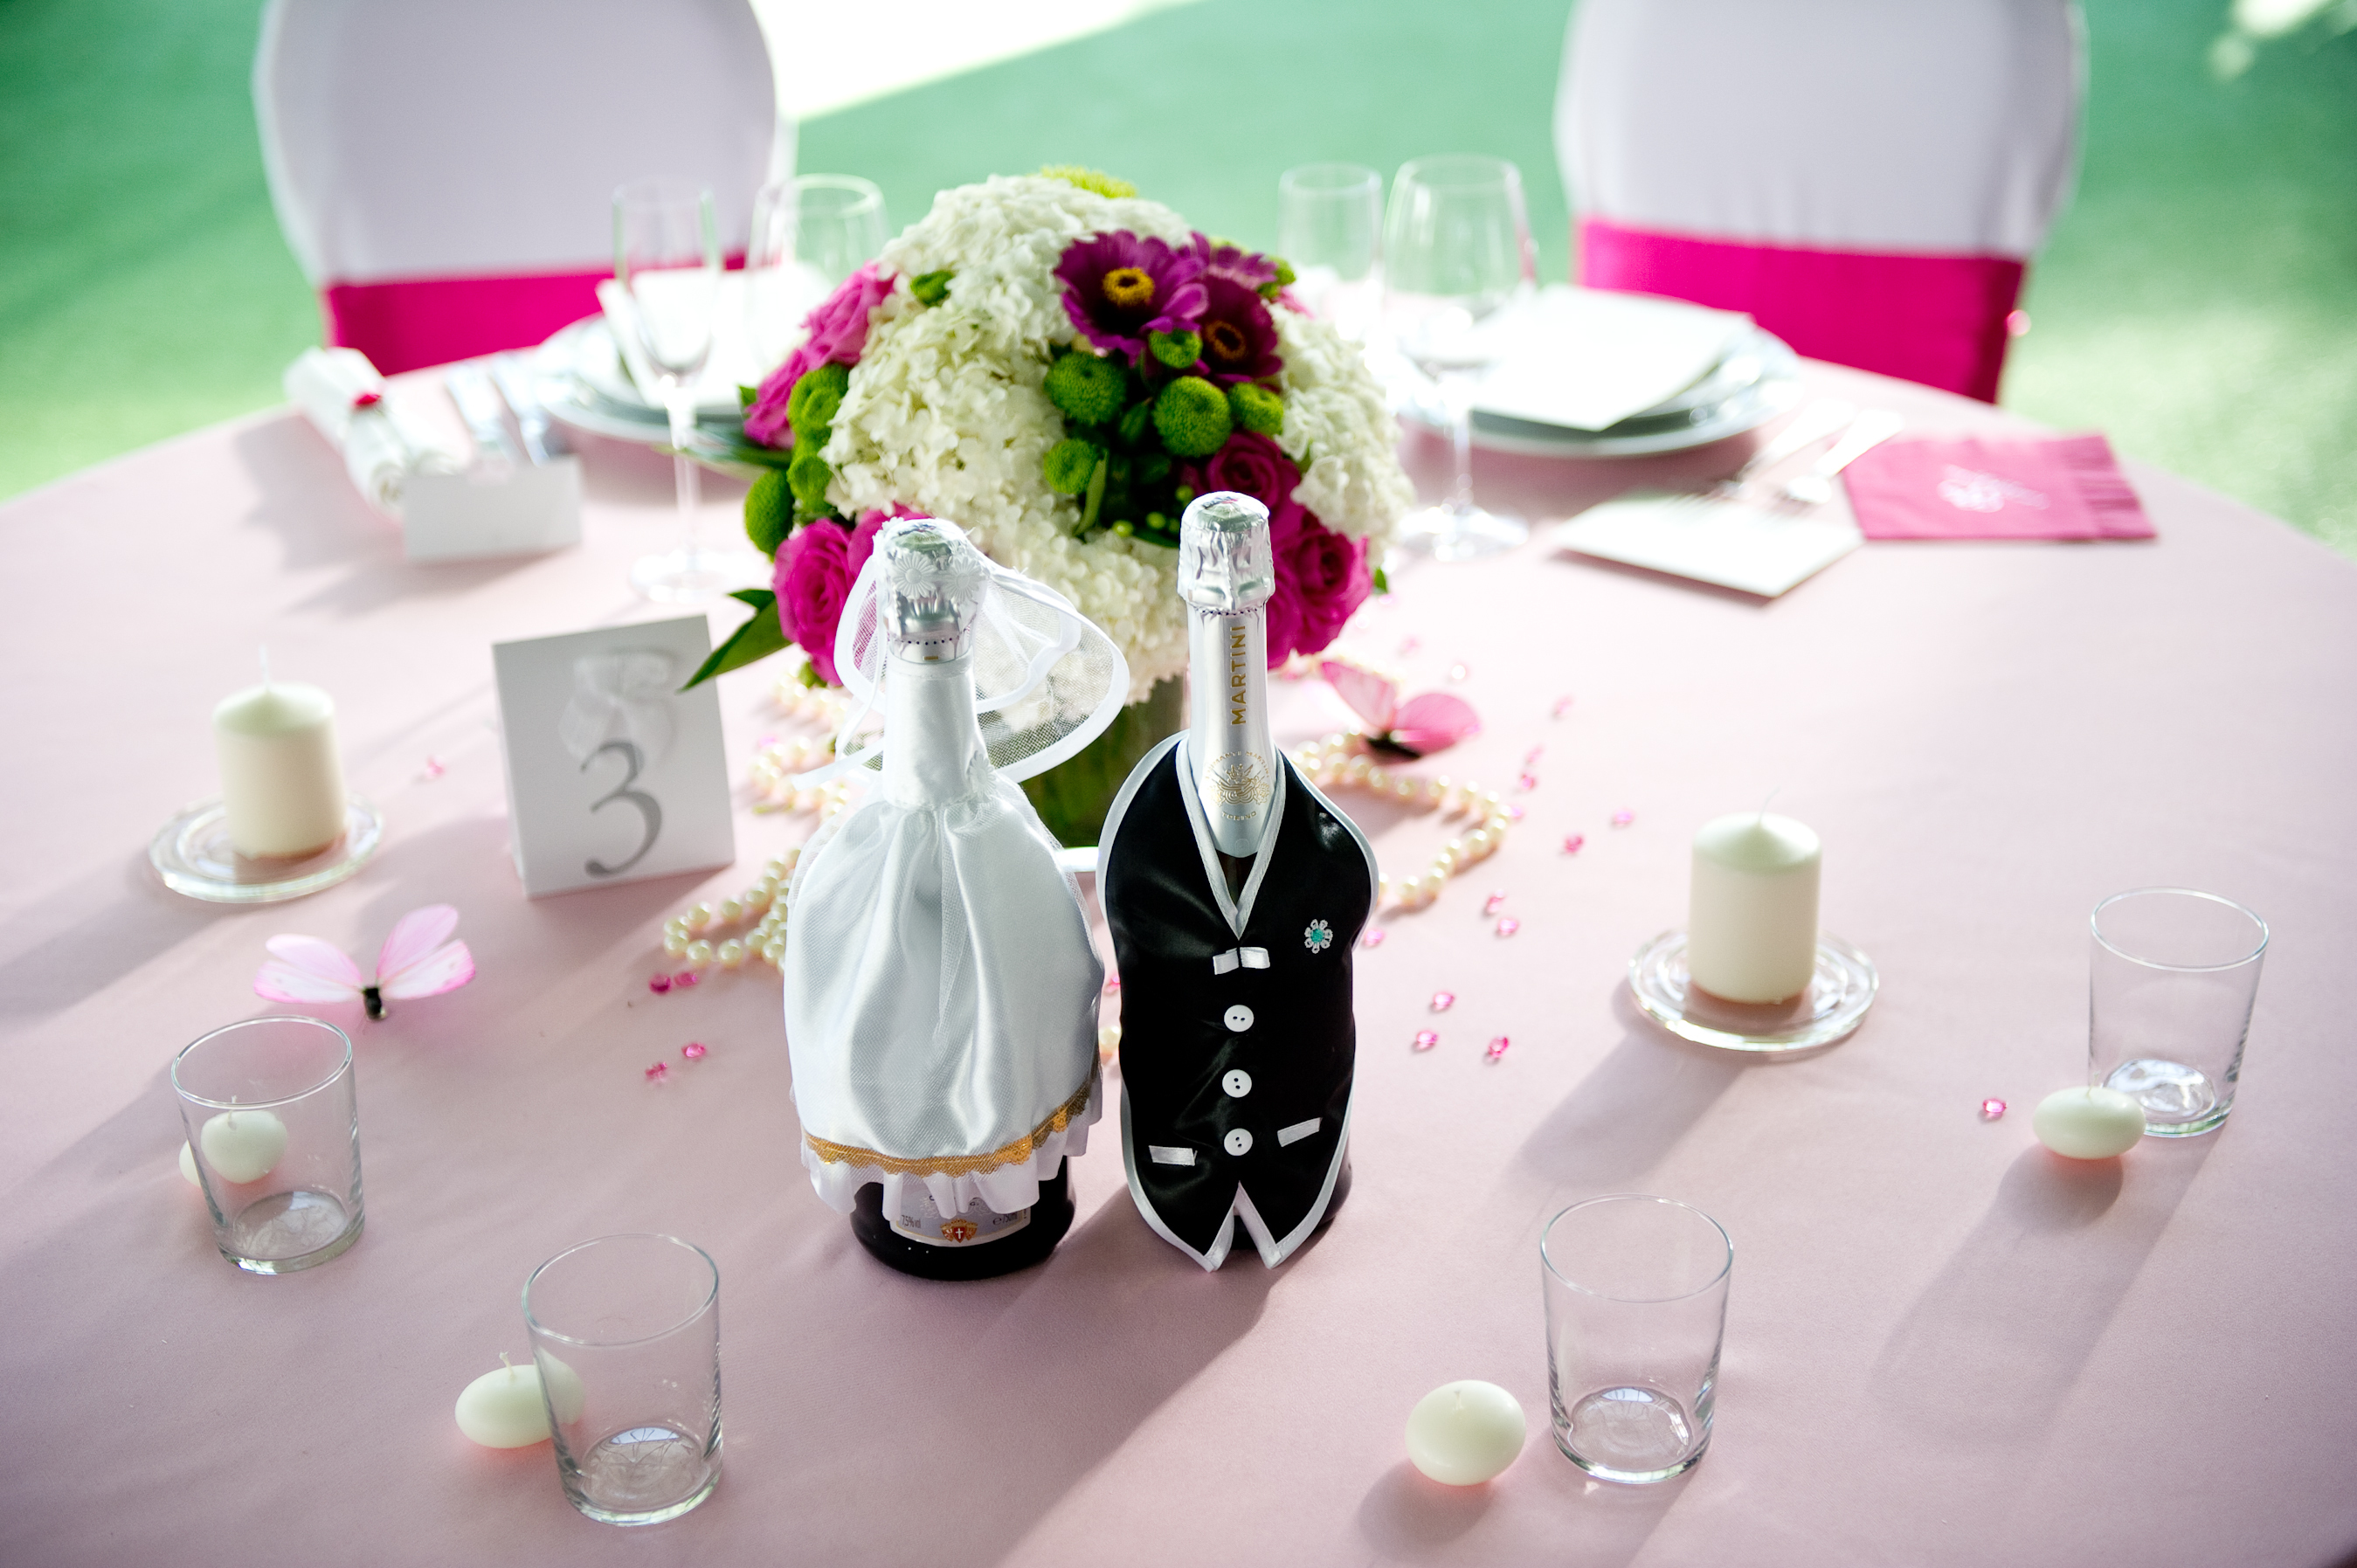 Bride And Groom Table Centerpiece Ideas